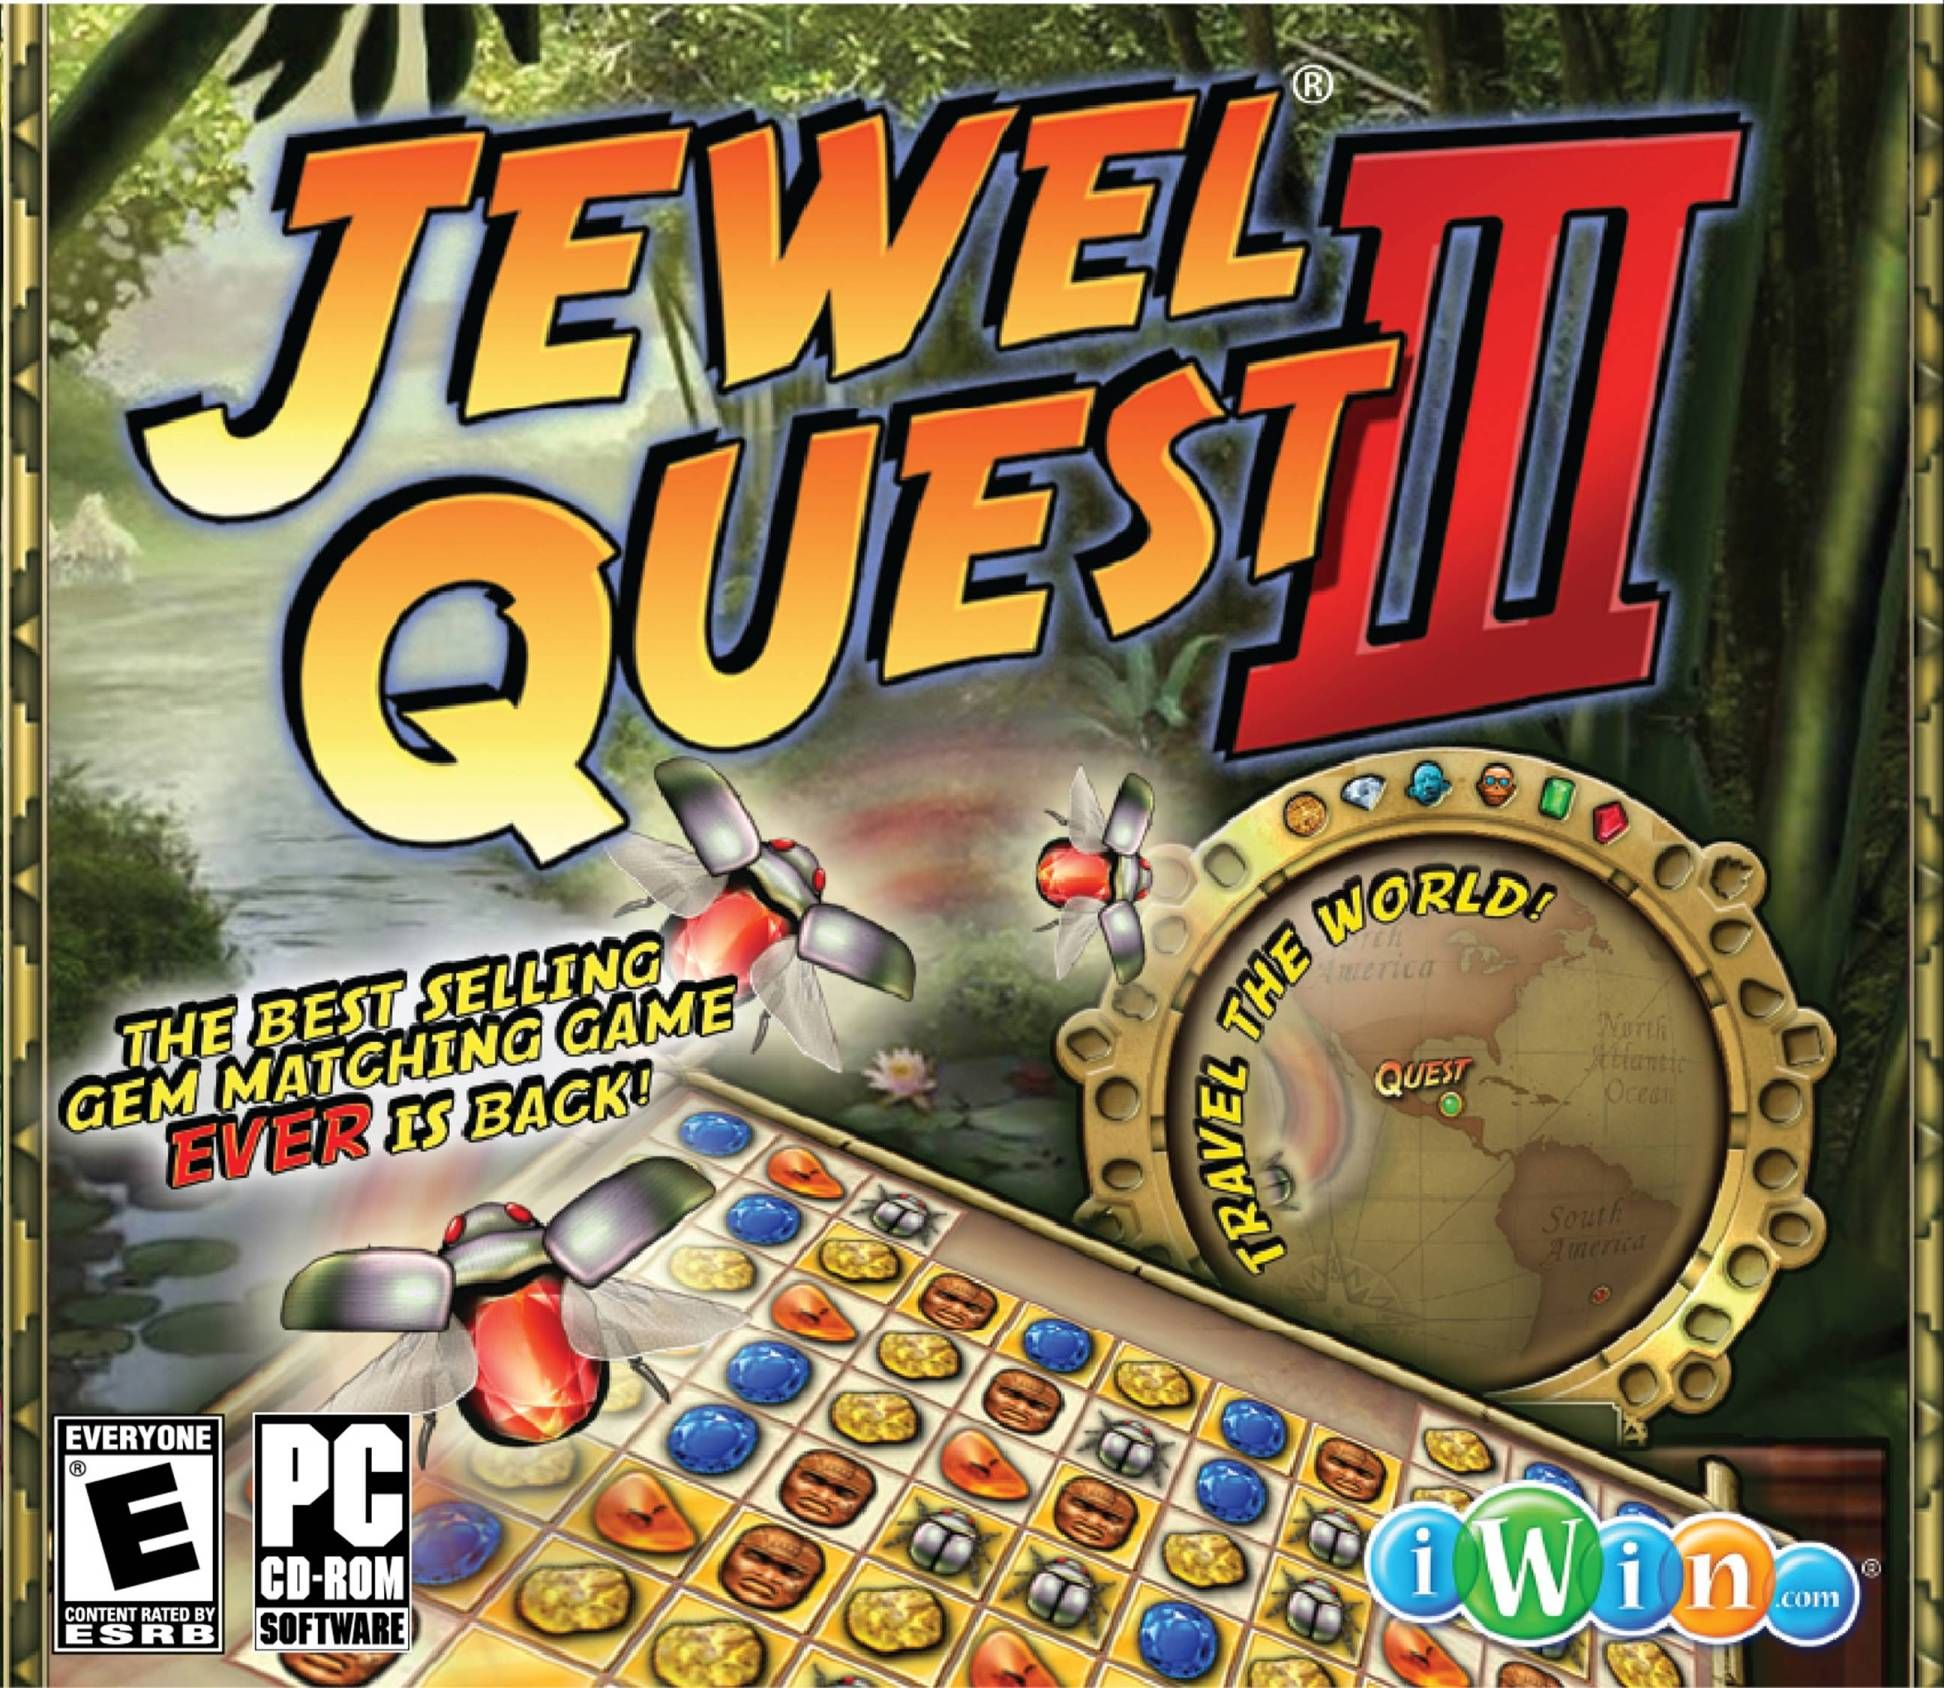 Play Jewel Quest 3 Comic book cover, Book cover, Comic books